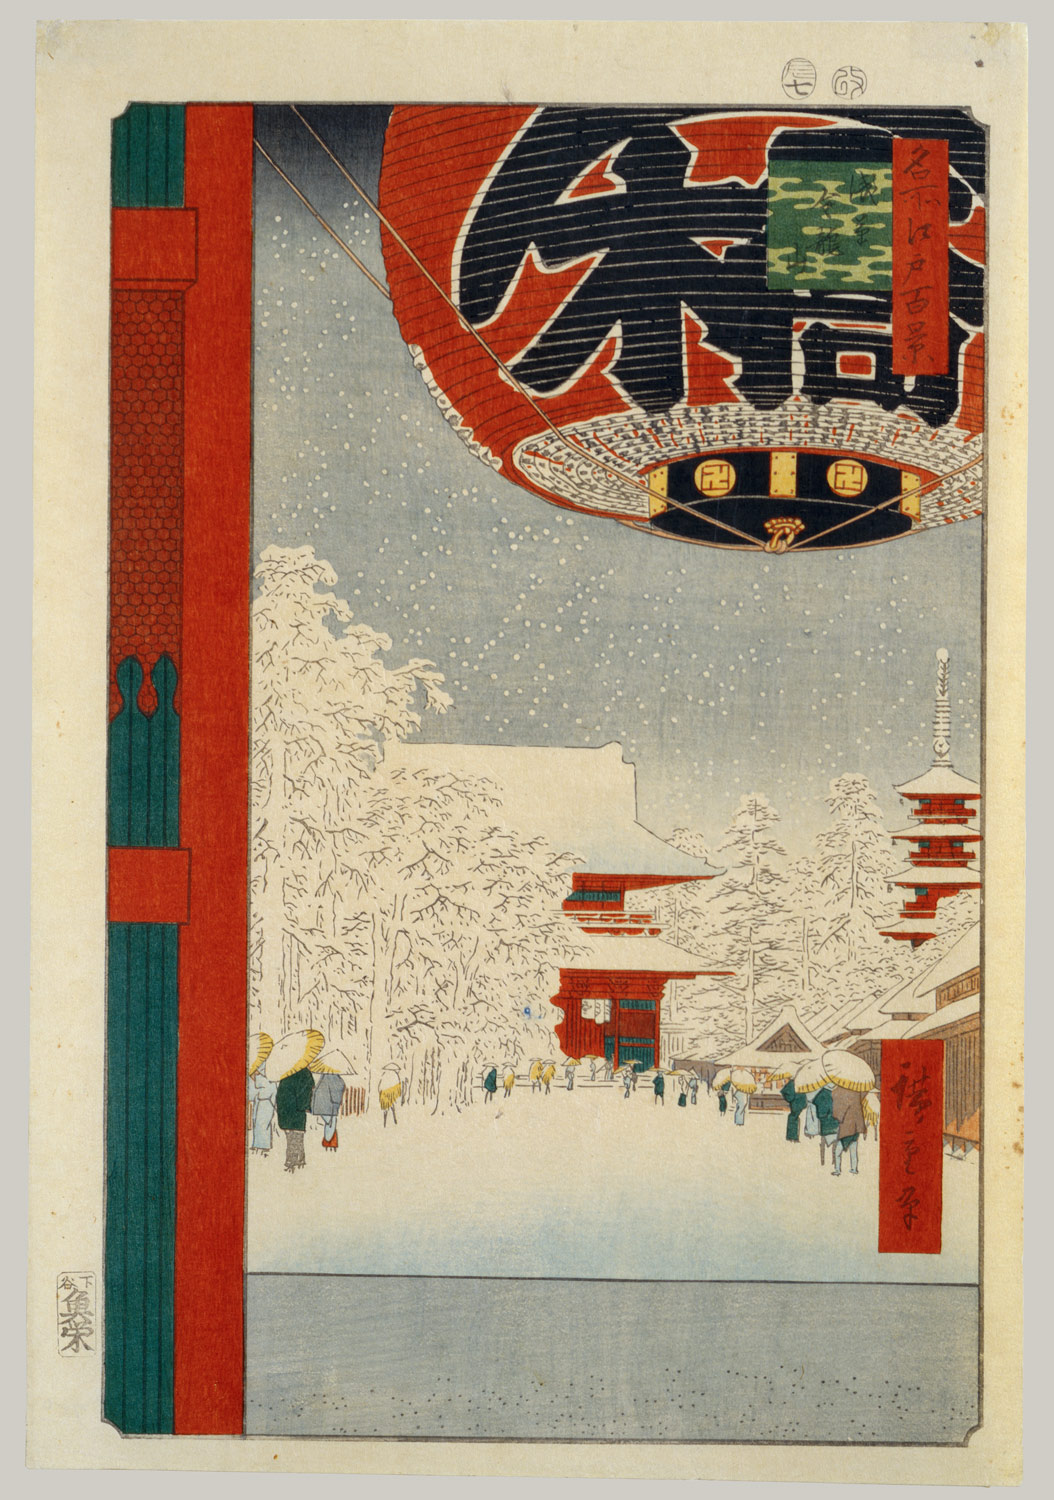 Kinryusan Temple at Asakusa: From the series One Hundred Famous Views of Edo